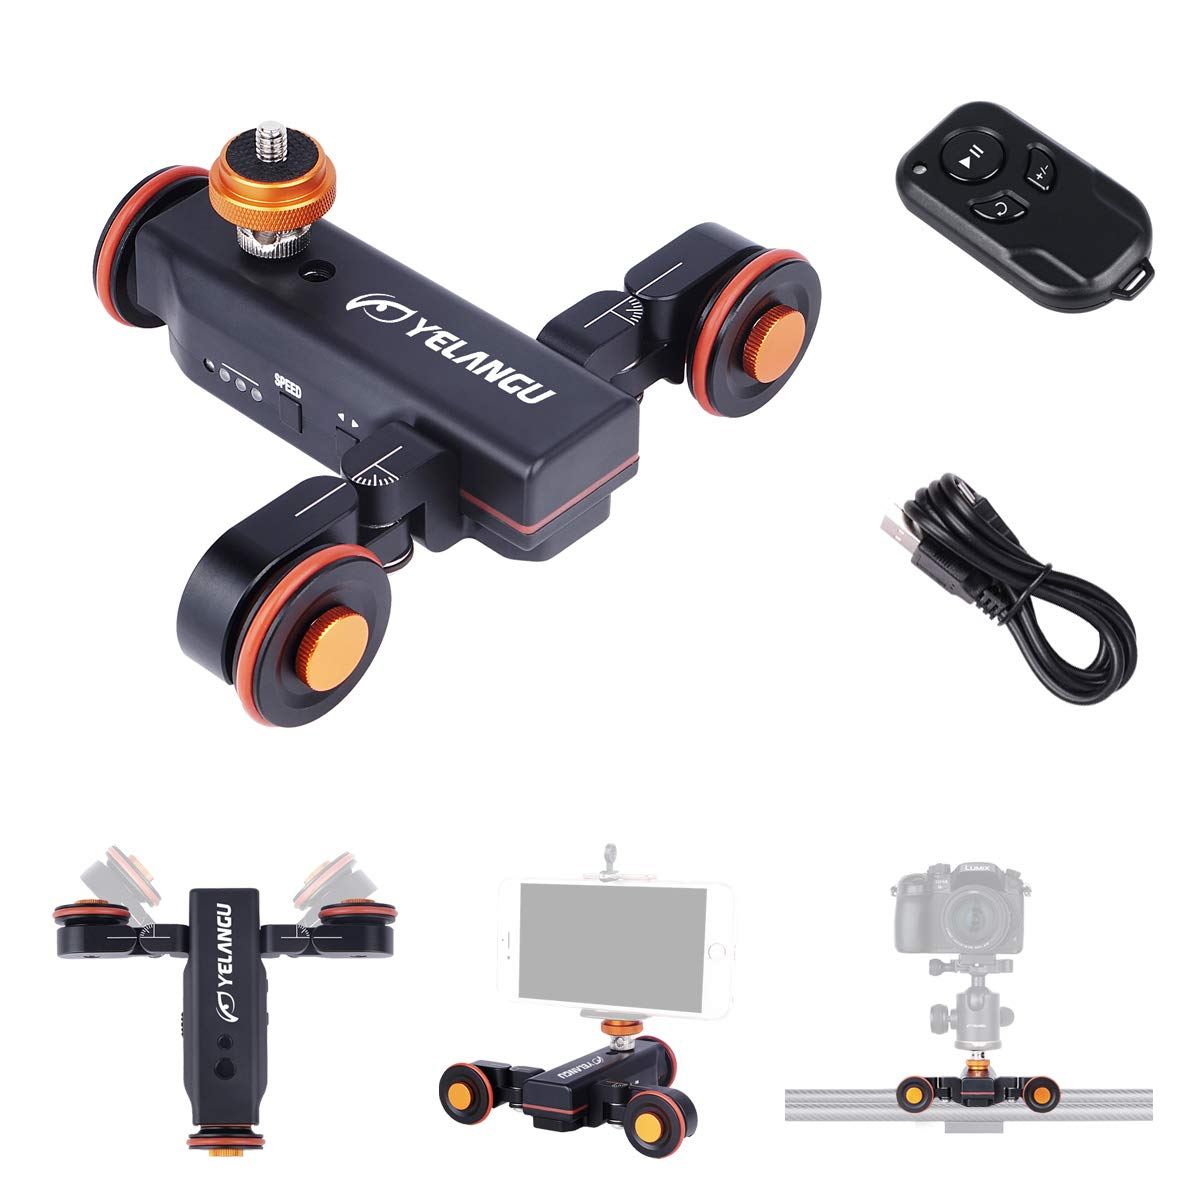 YELANGU Motorized Autodolly Video Slider with Remote, Rechargeable, 3 Speed Adjust for GoPro and iPhone Camera Weight Up to 3kgs(Black) Shooting with Straight Lines and Surrounding Objects by YELANGU